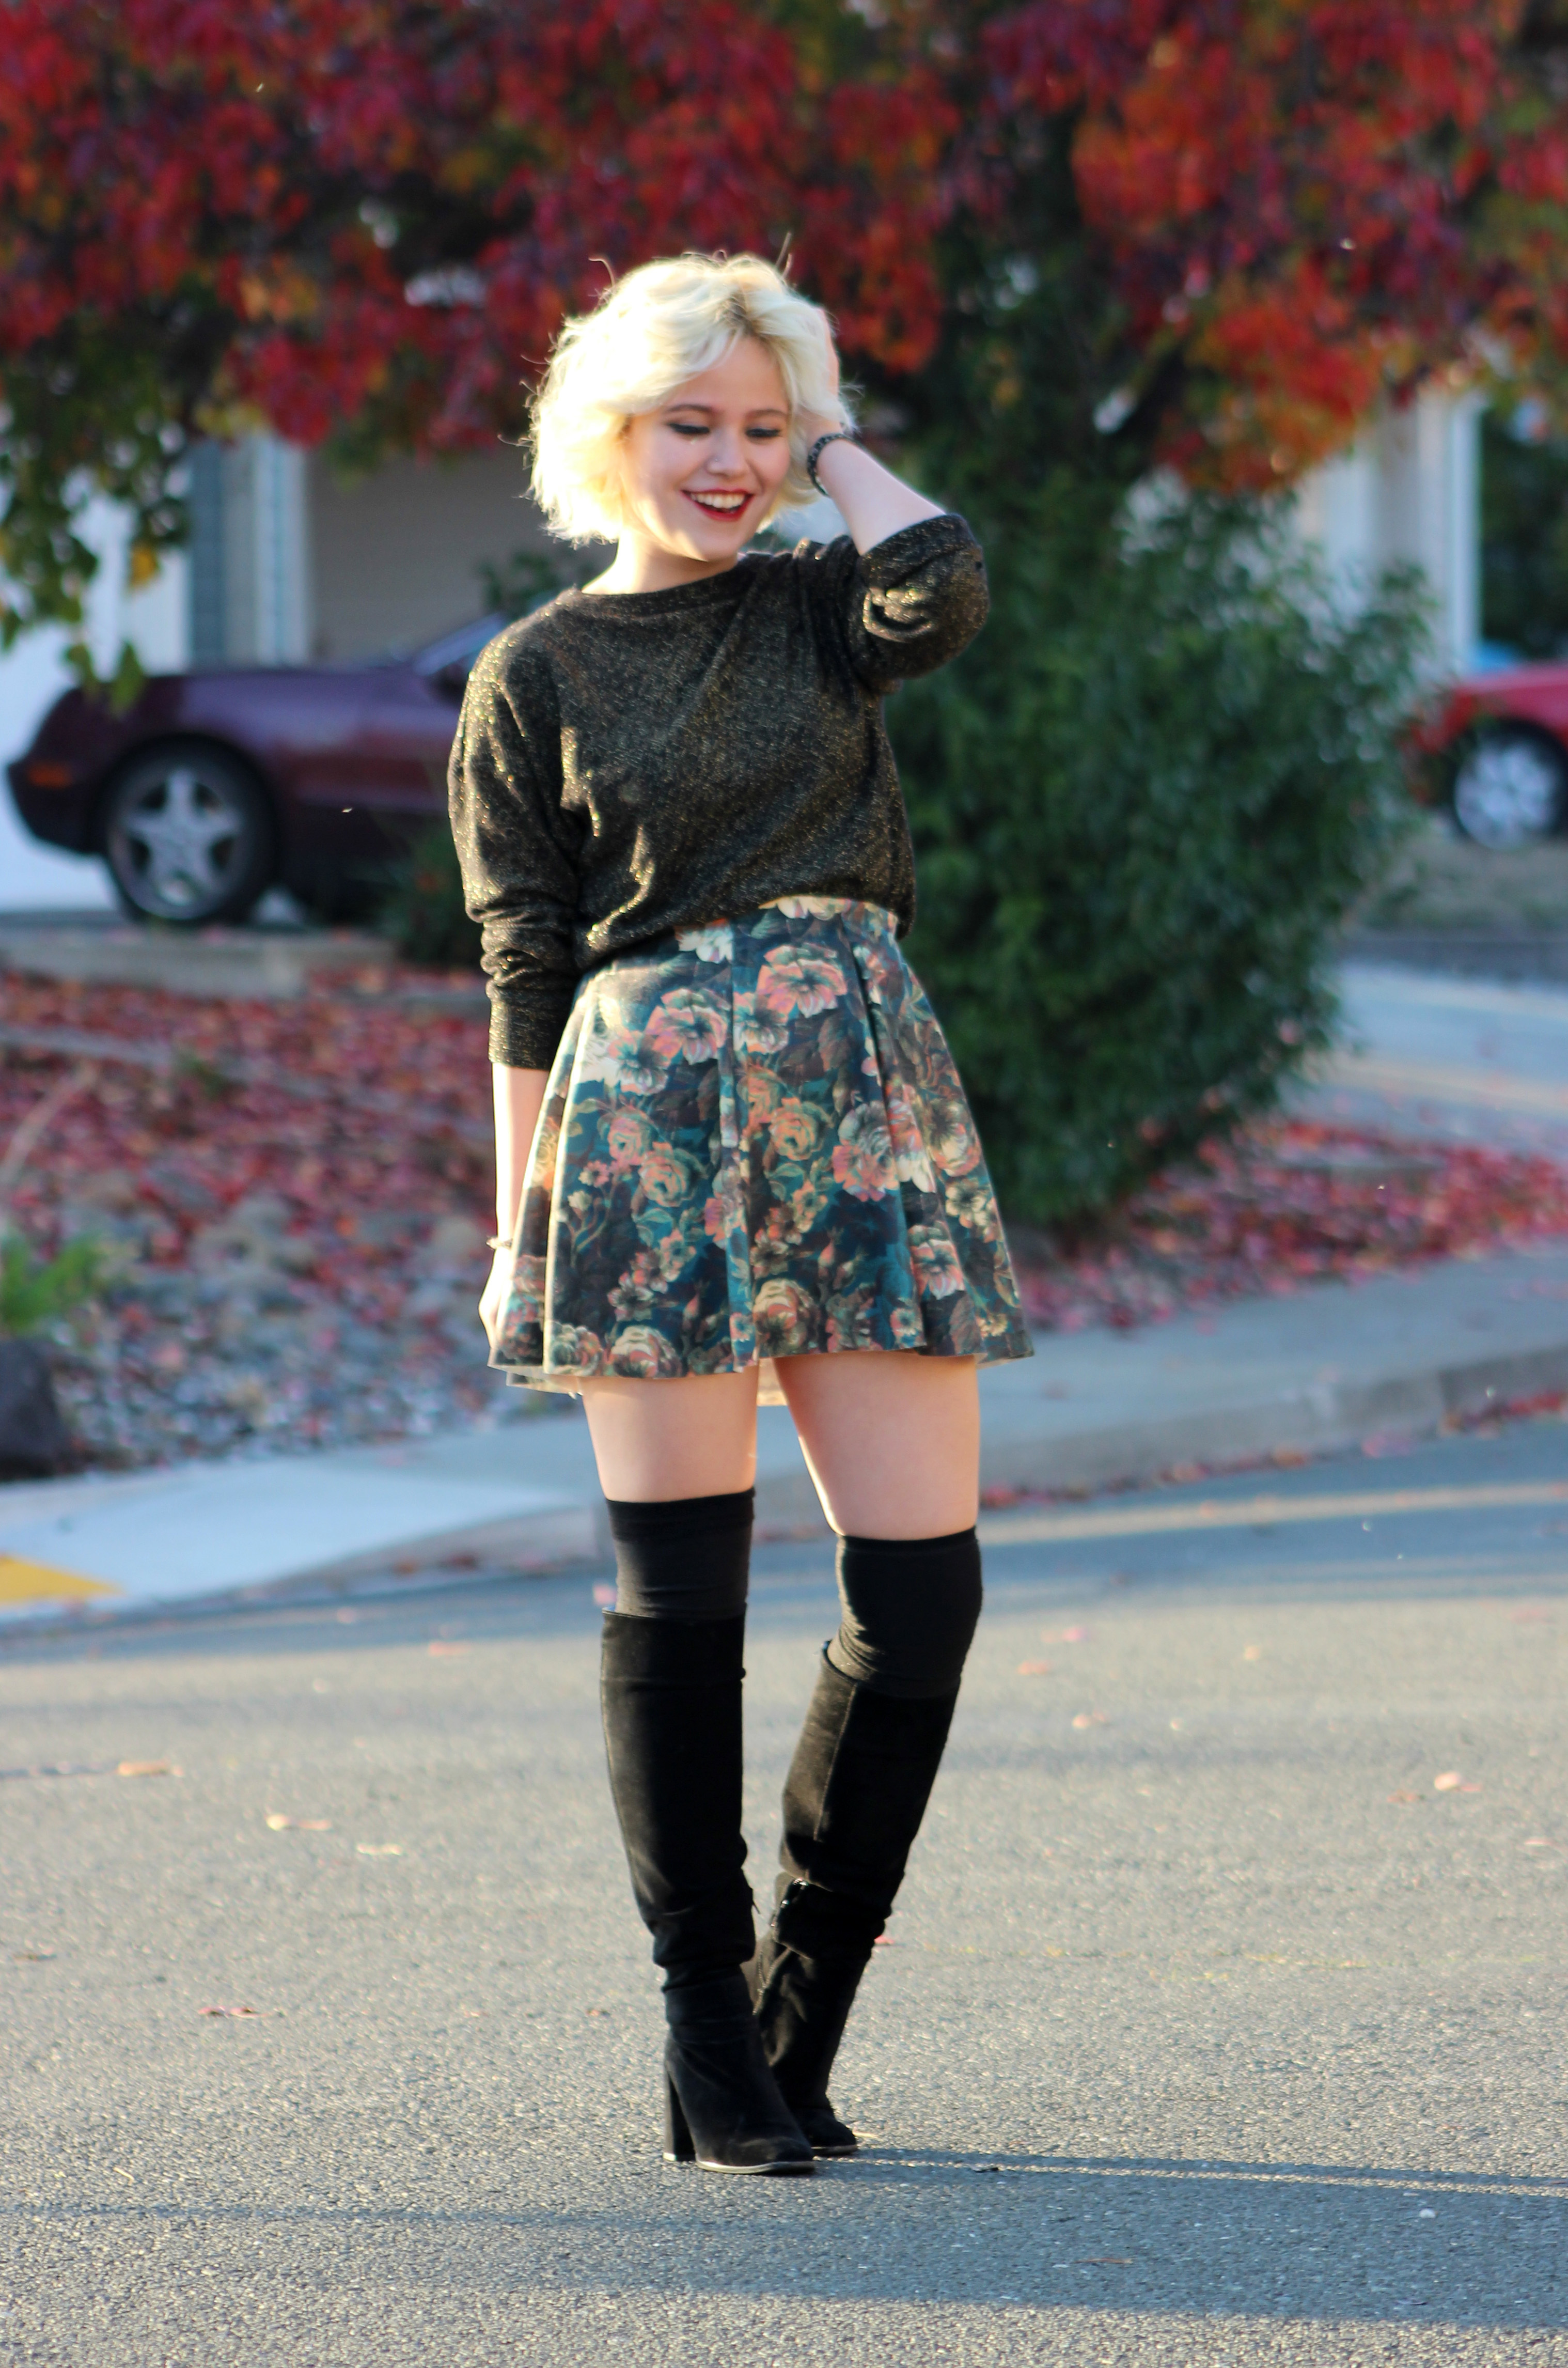 Sweater Dress And Knee High Socks Black Knee High Socks Buy